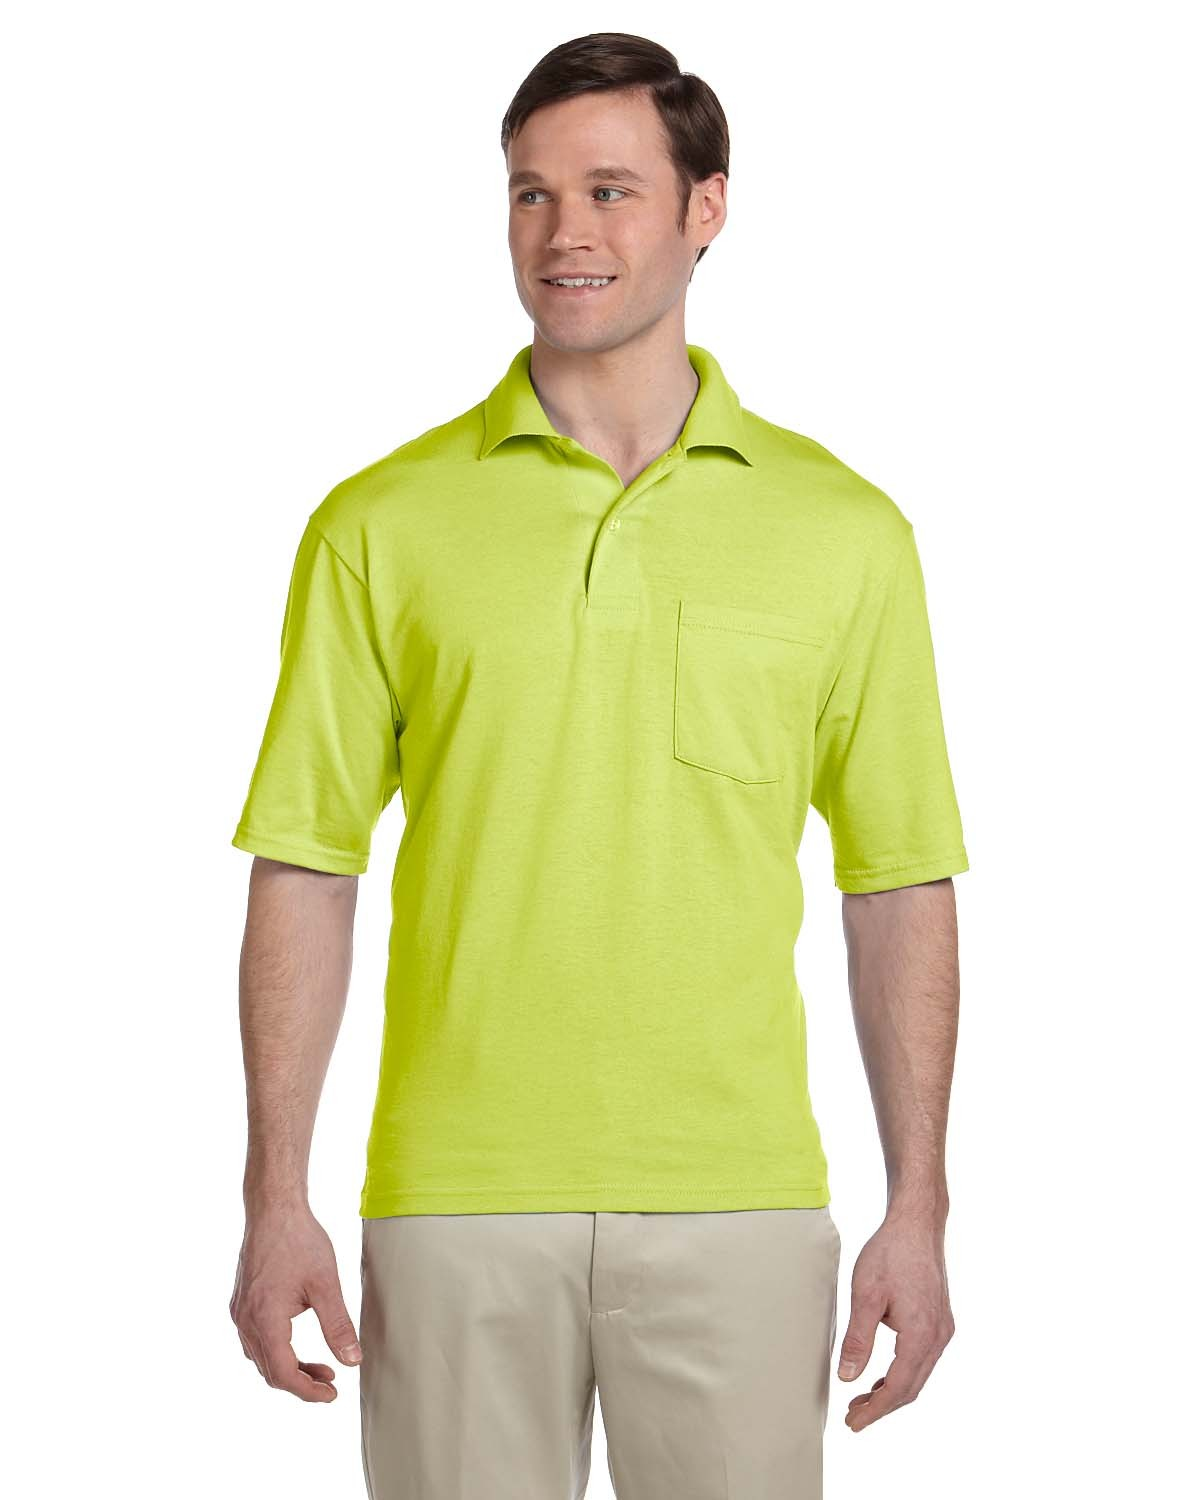 436P Jerzees SAFETY GREEN